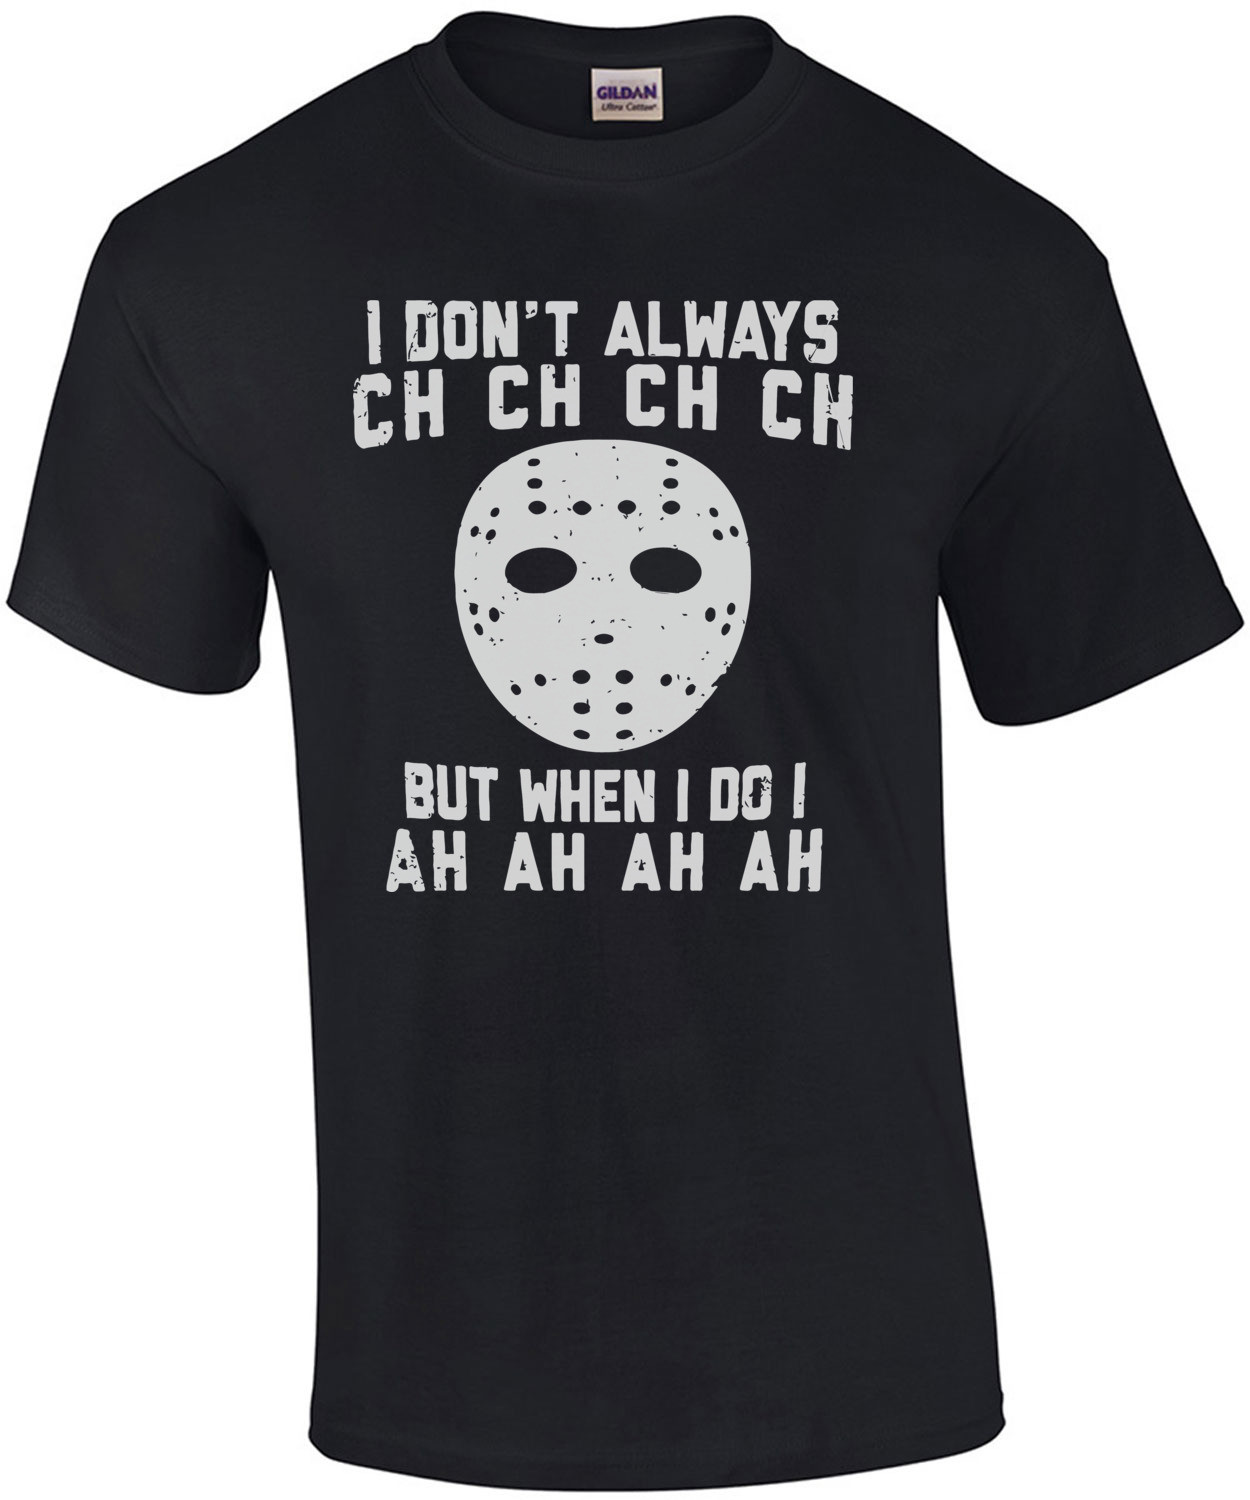 I don't always ch ch ch ch but when I do I ah ah ah ah Jason Voorhees - Friday The 13th  T-Shirt